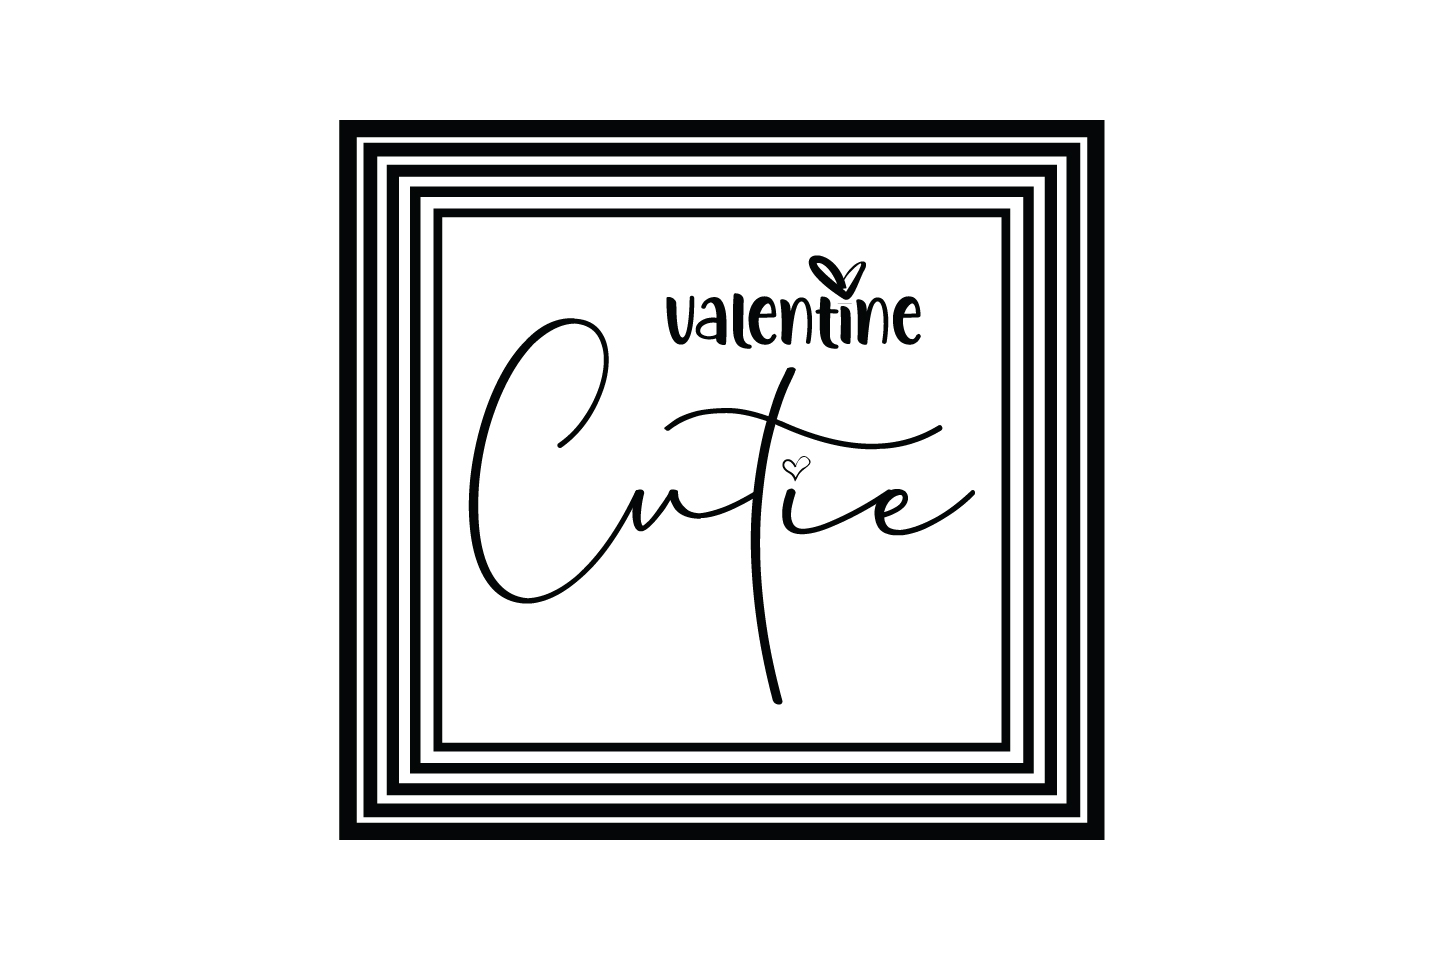 Download Free Valentine Cutie Quote Svg Cut Graphic By Yuhana Purwanti for Cricut Explore, Silhouette and other cutting machines.